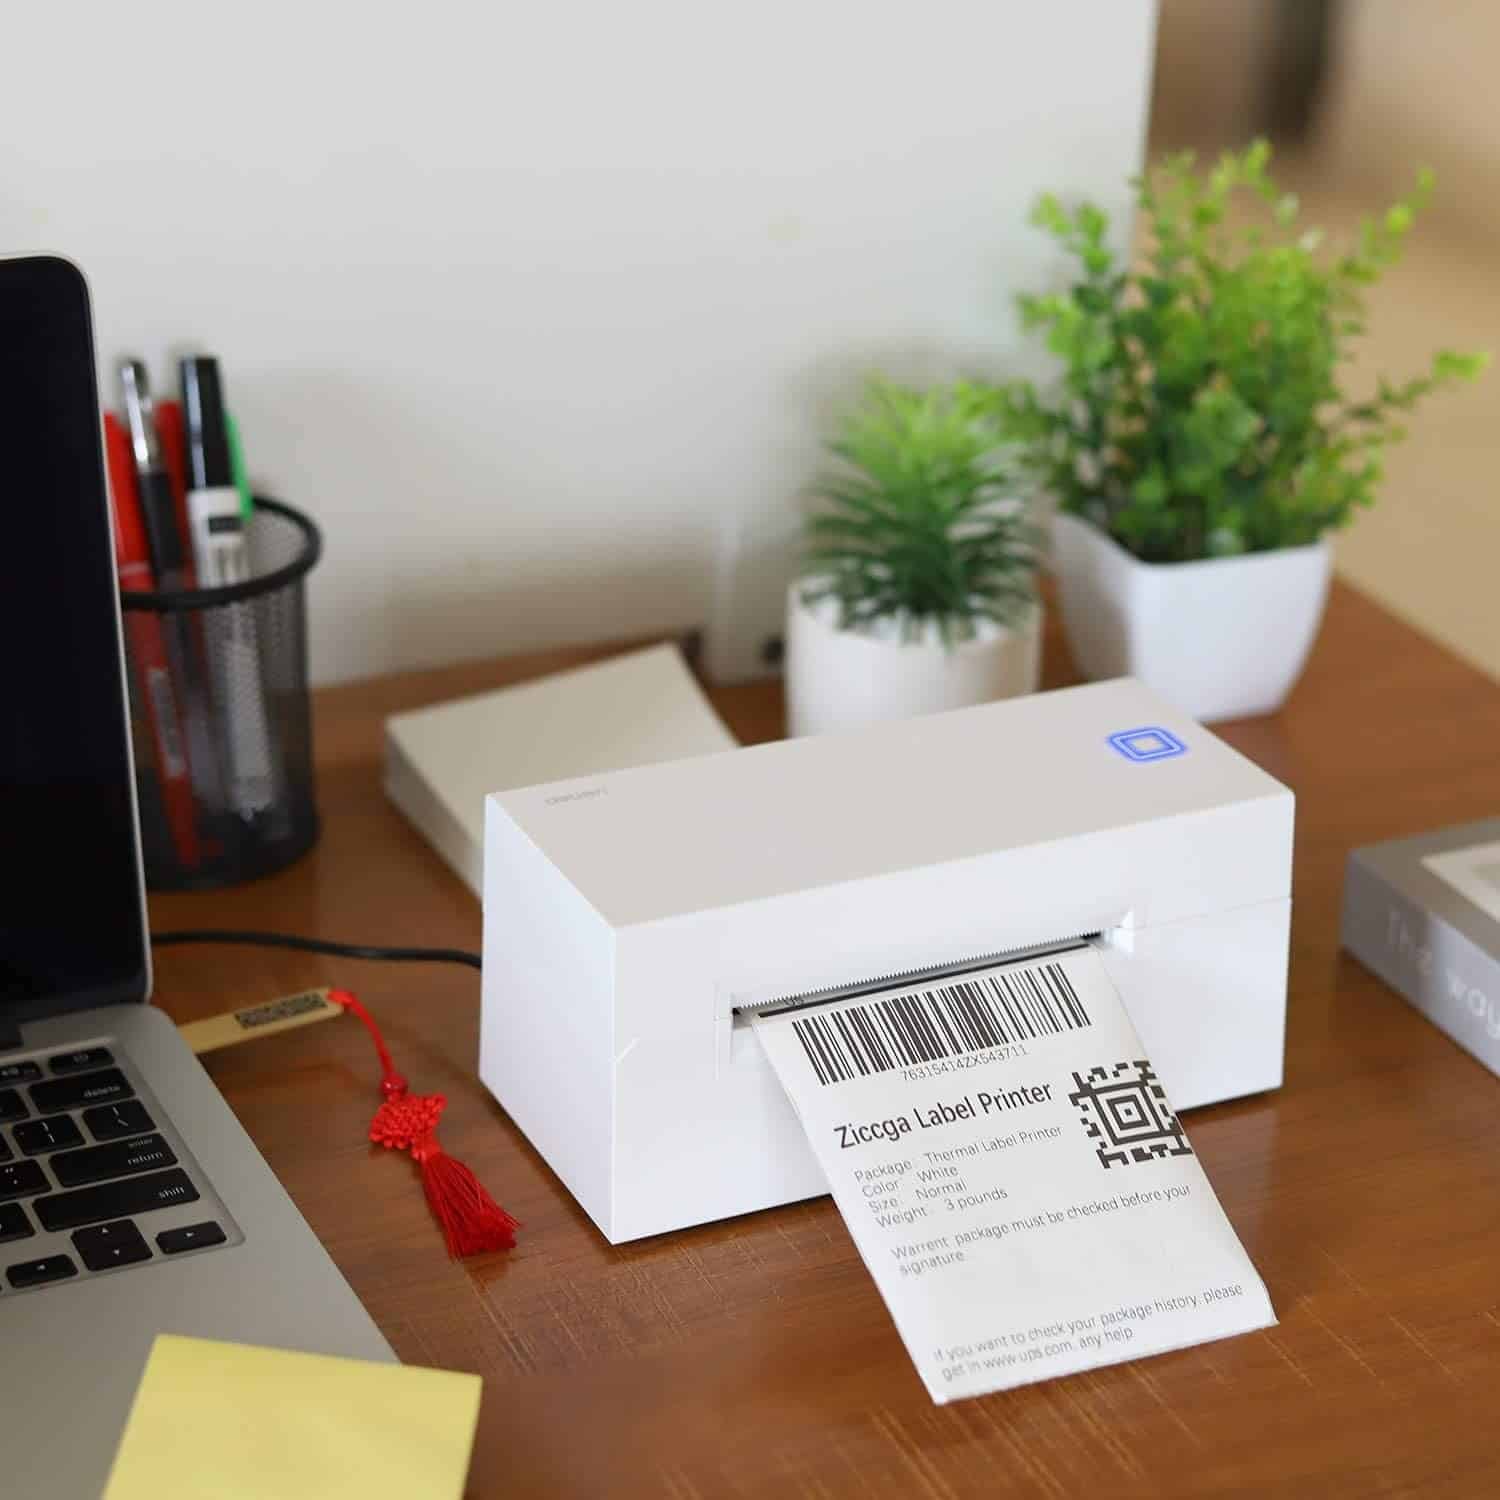 Top 3 signs to keep in mind buying an Epson printer